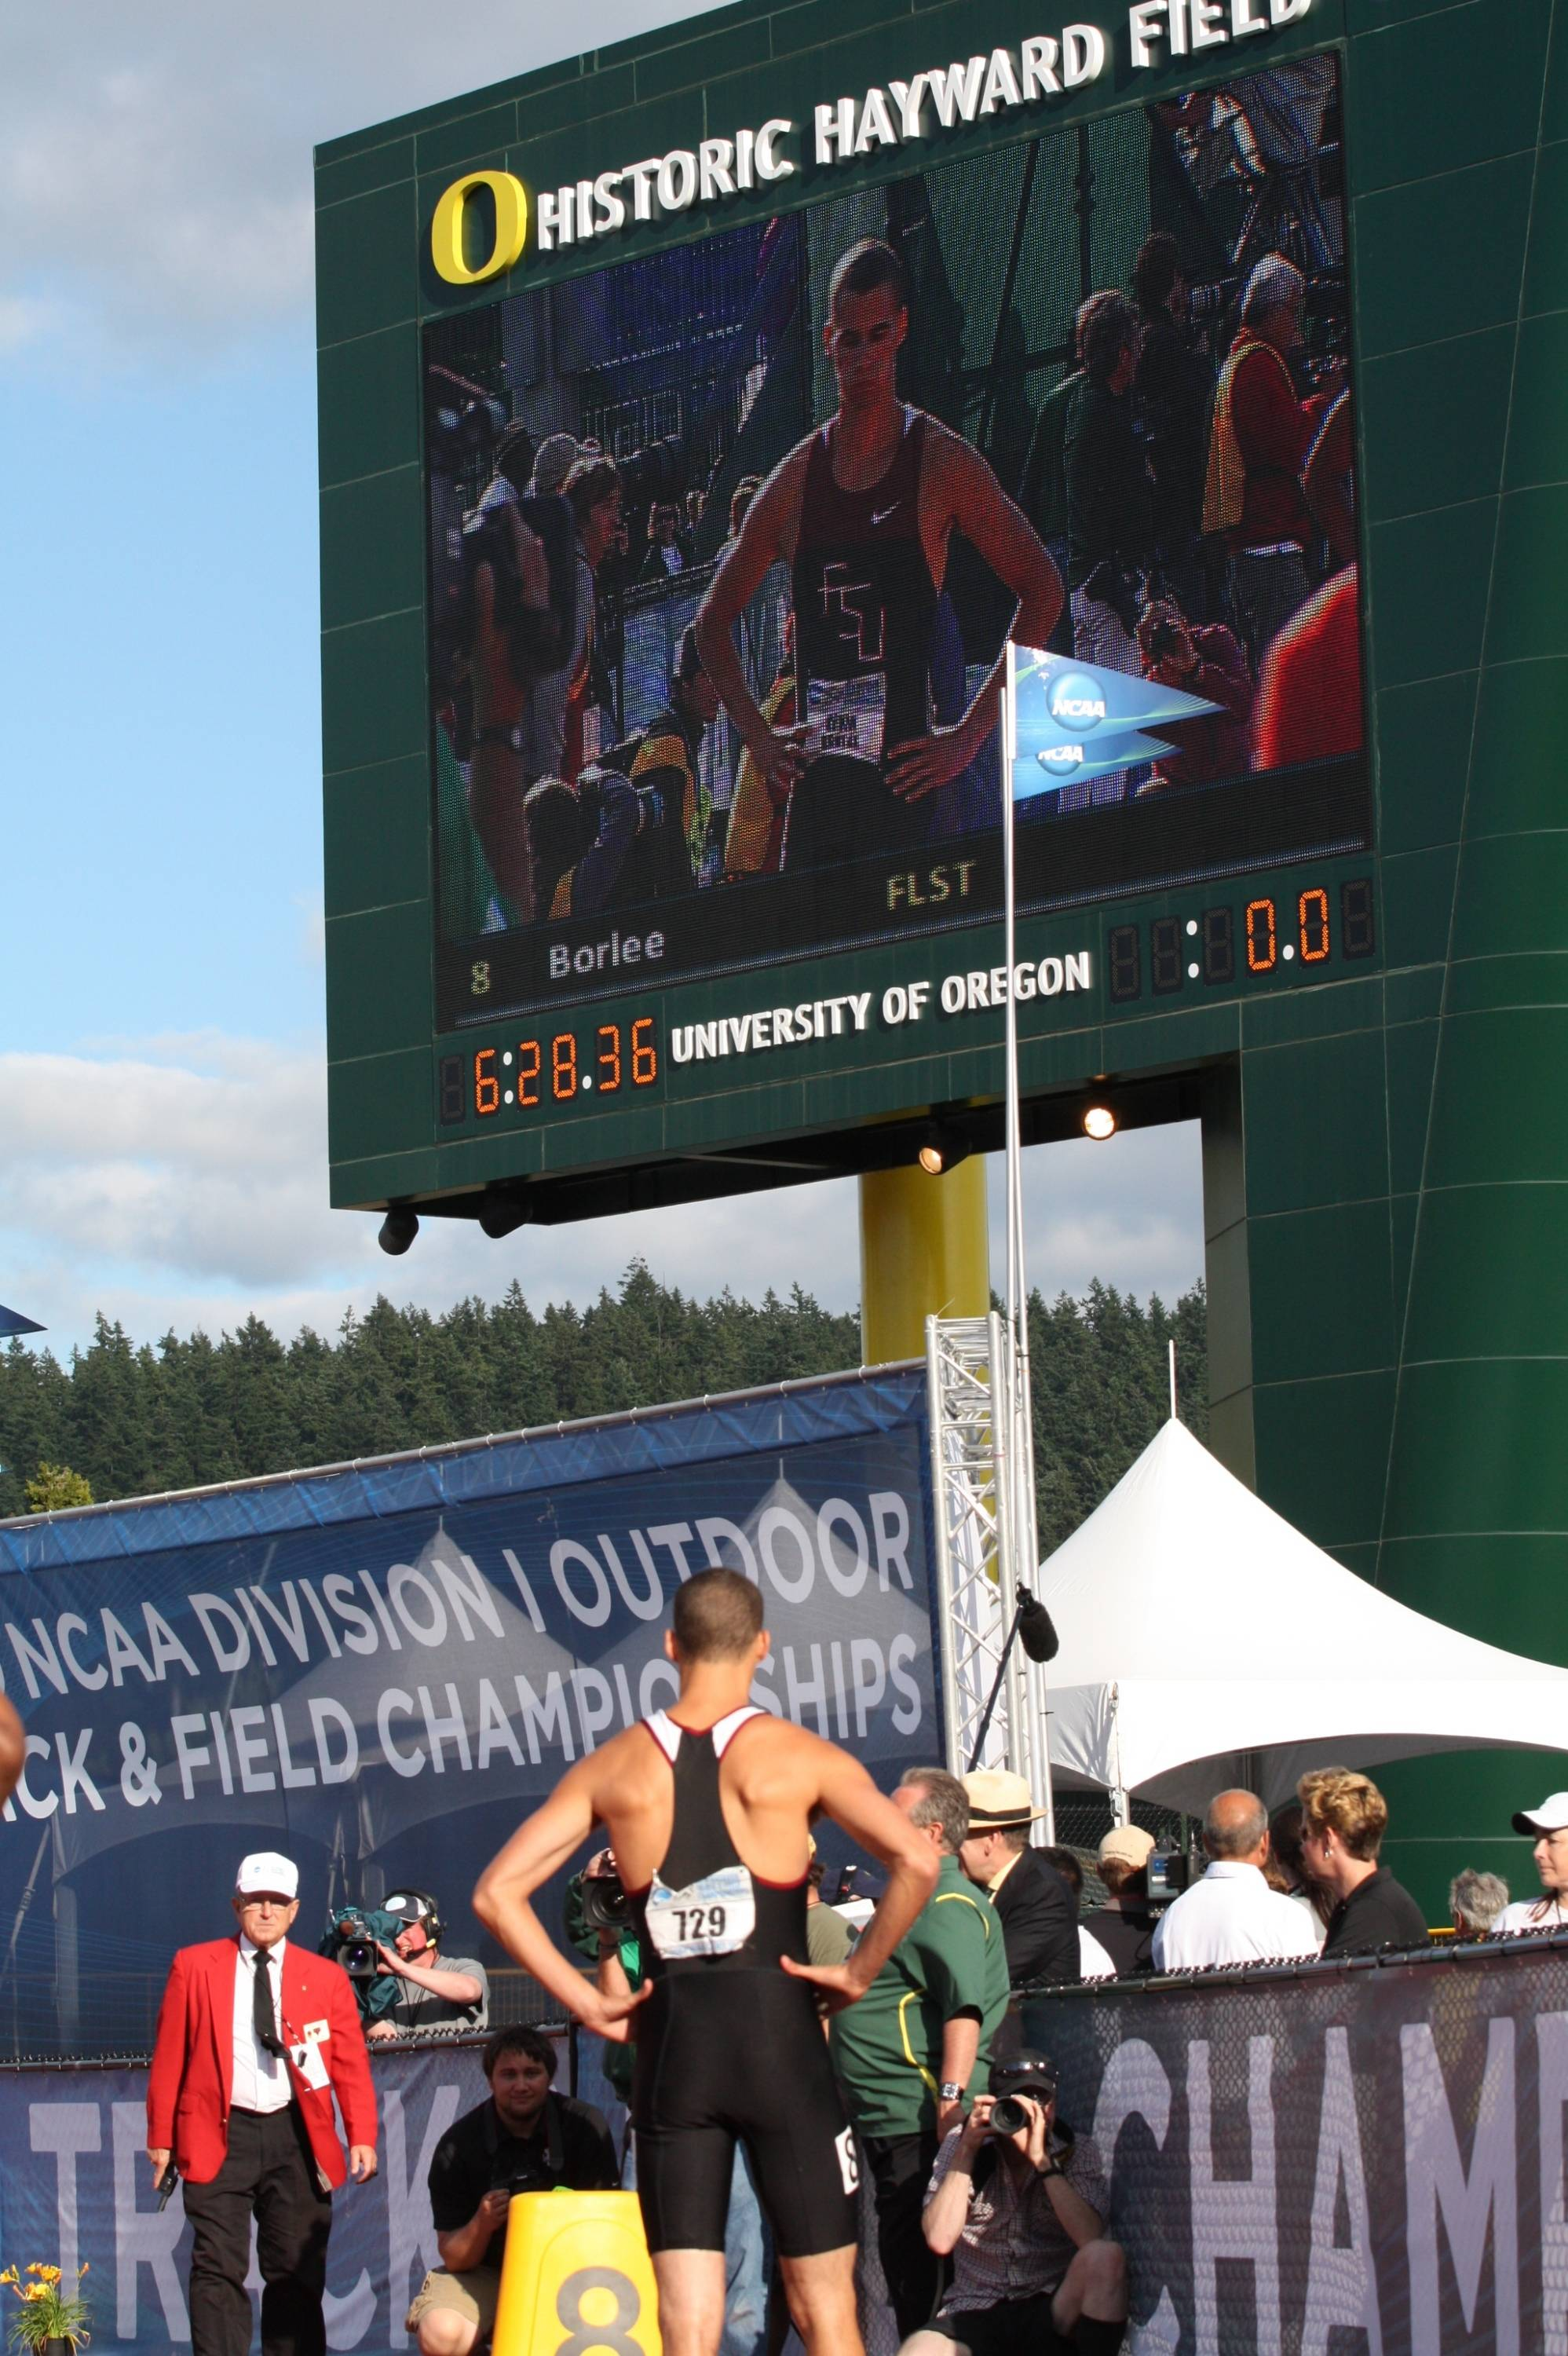 The third day of the 2010 NCAA Outdoor Championships.